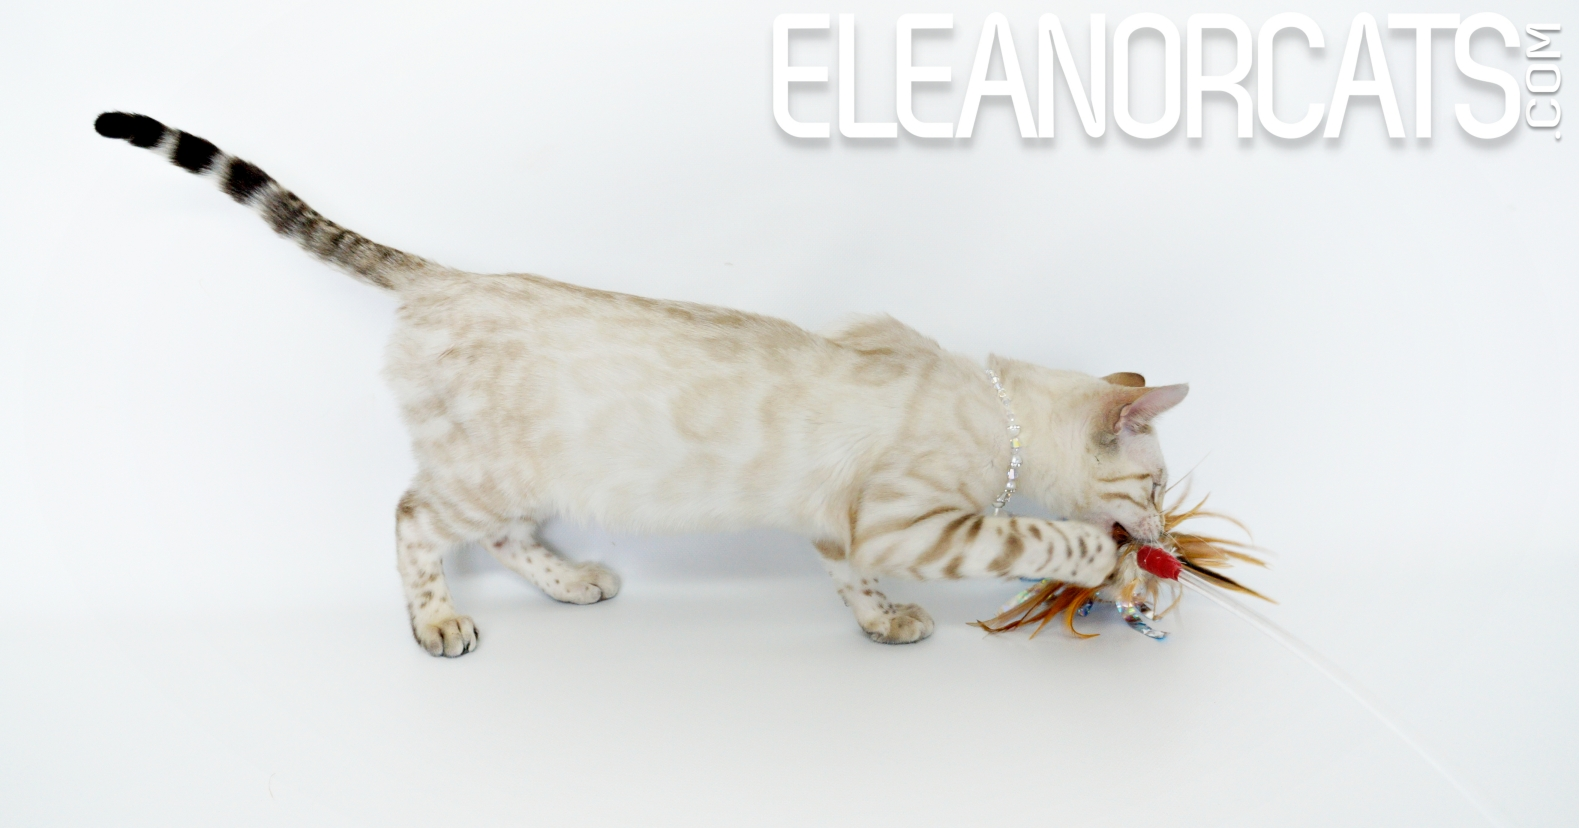 Crystal ELEANORCATS Bengal seal lynx spotted